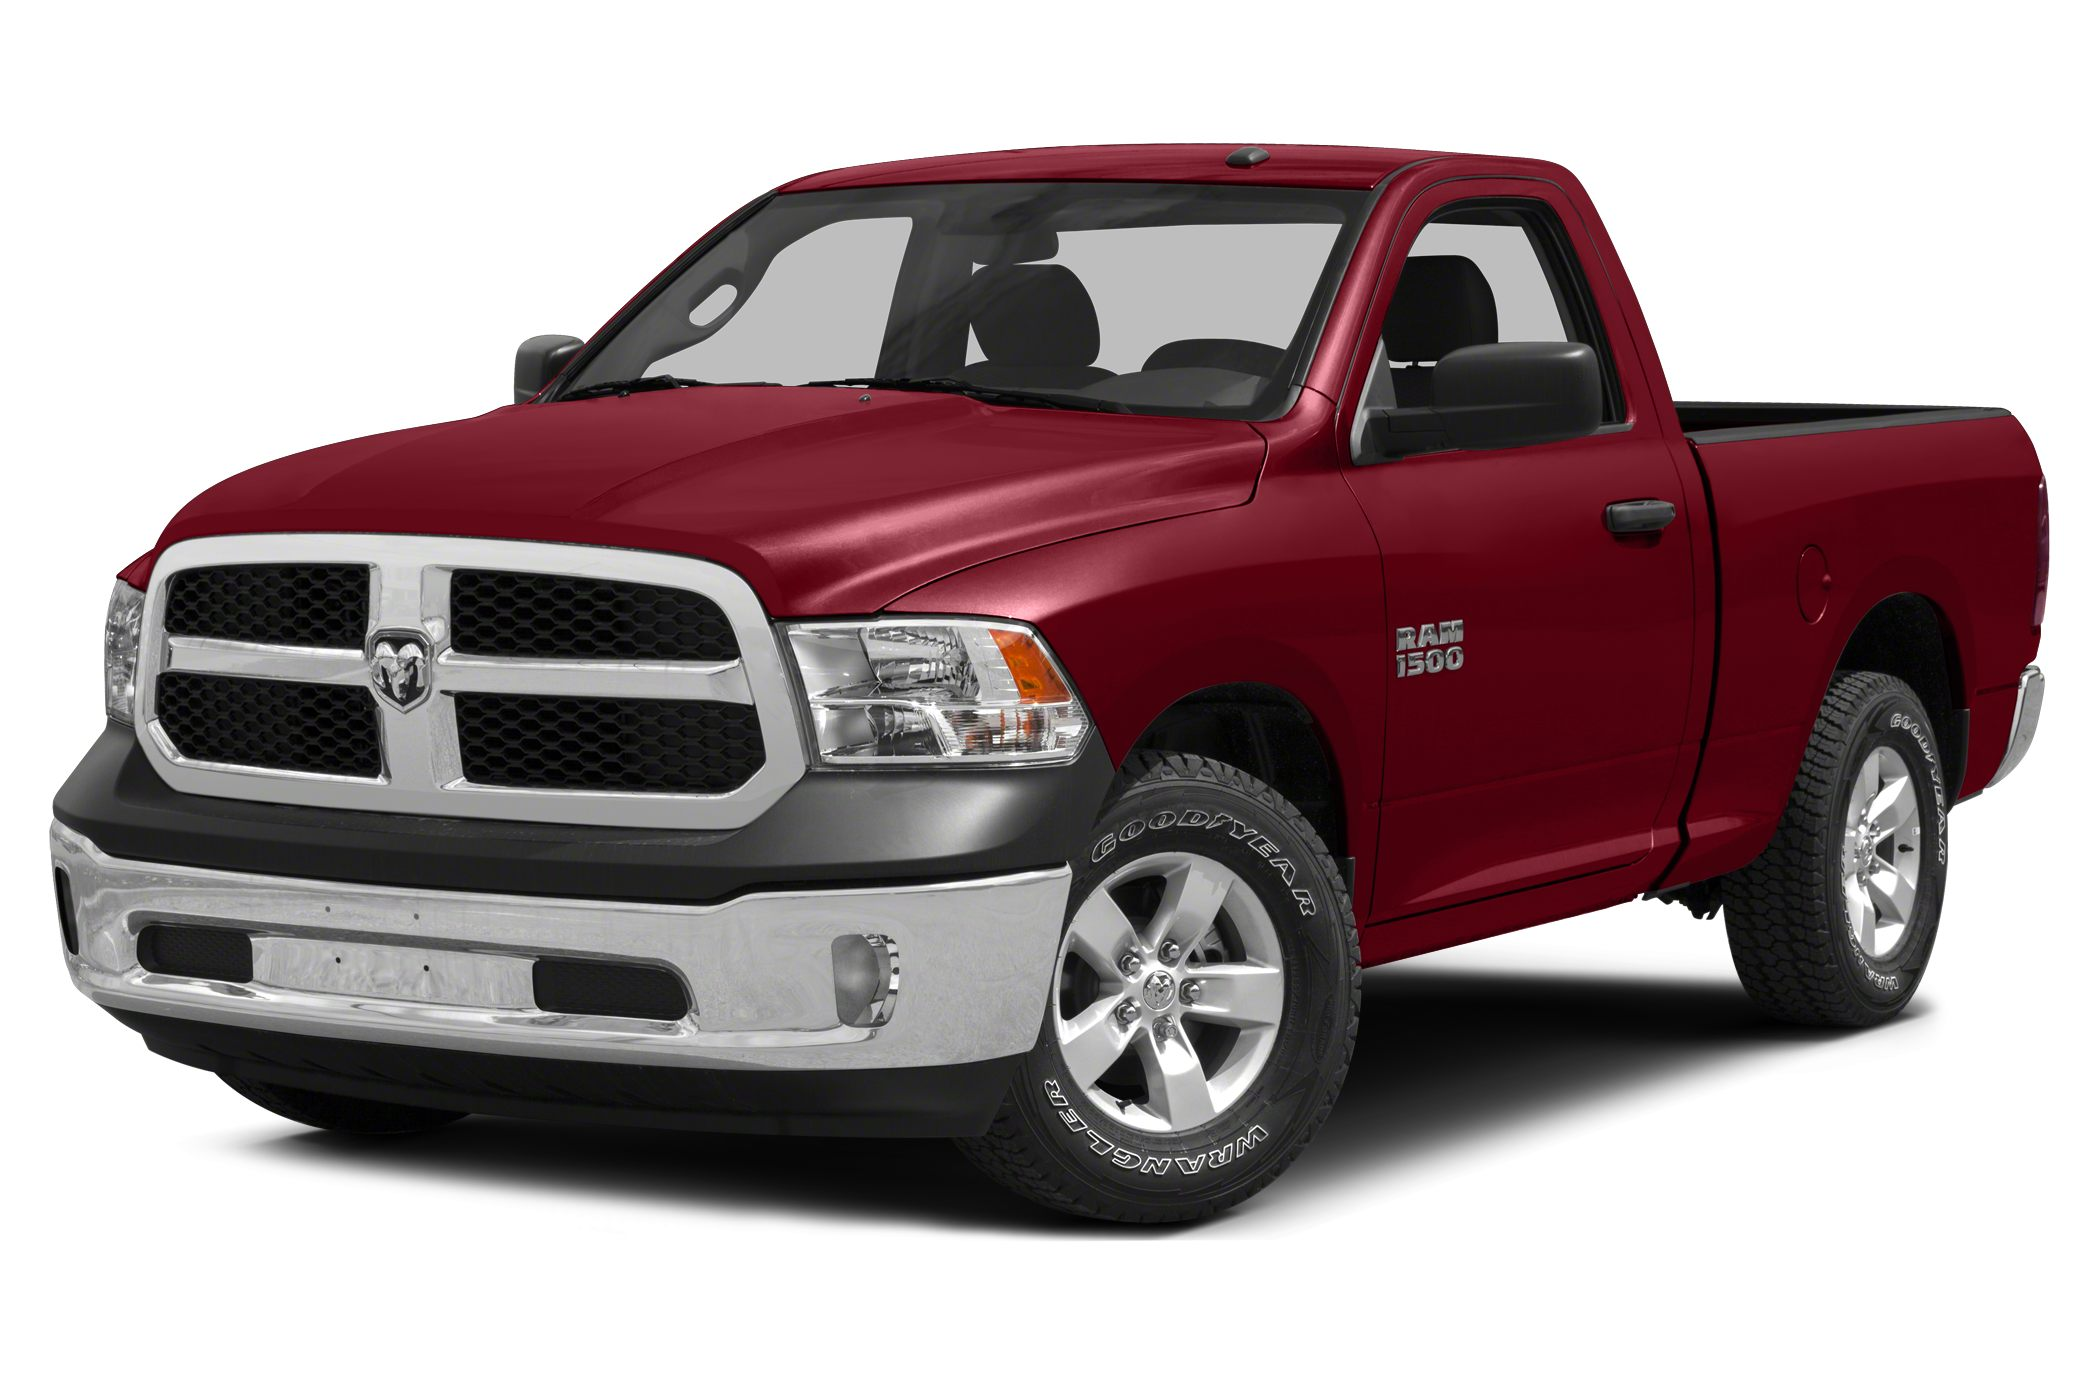 2015 RAM 1500 Tradesman/Express Regular Cab Pickup for sale in Vinita for $27,000 with 1 miles.